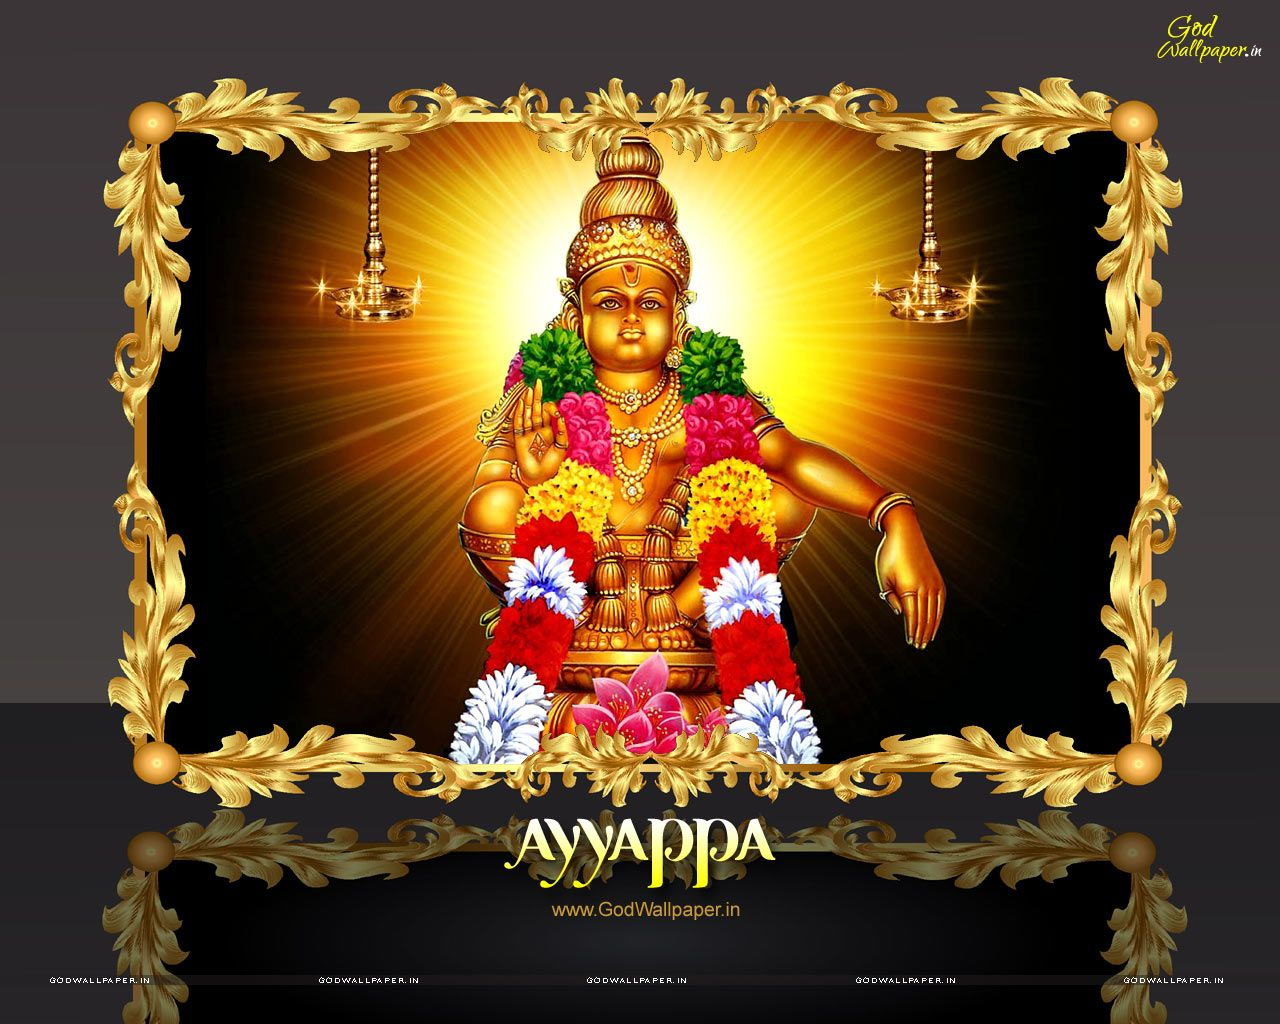 1 The Kerala Government Today Told The Supreme Court That The Custom Of Barring Entry Of Lord Ayyappa Hd Wallpapers Lord Shiva Hd Wallpaper Wallpaper Images Hd